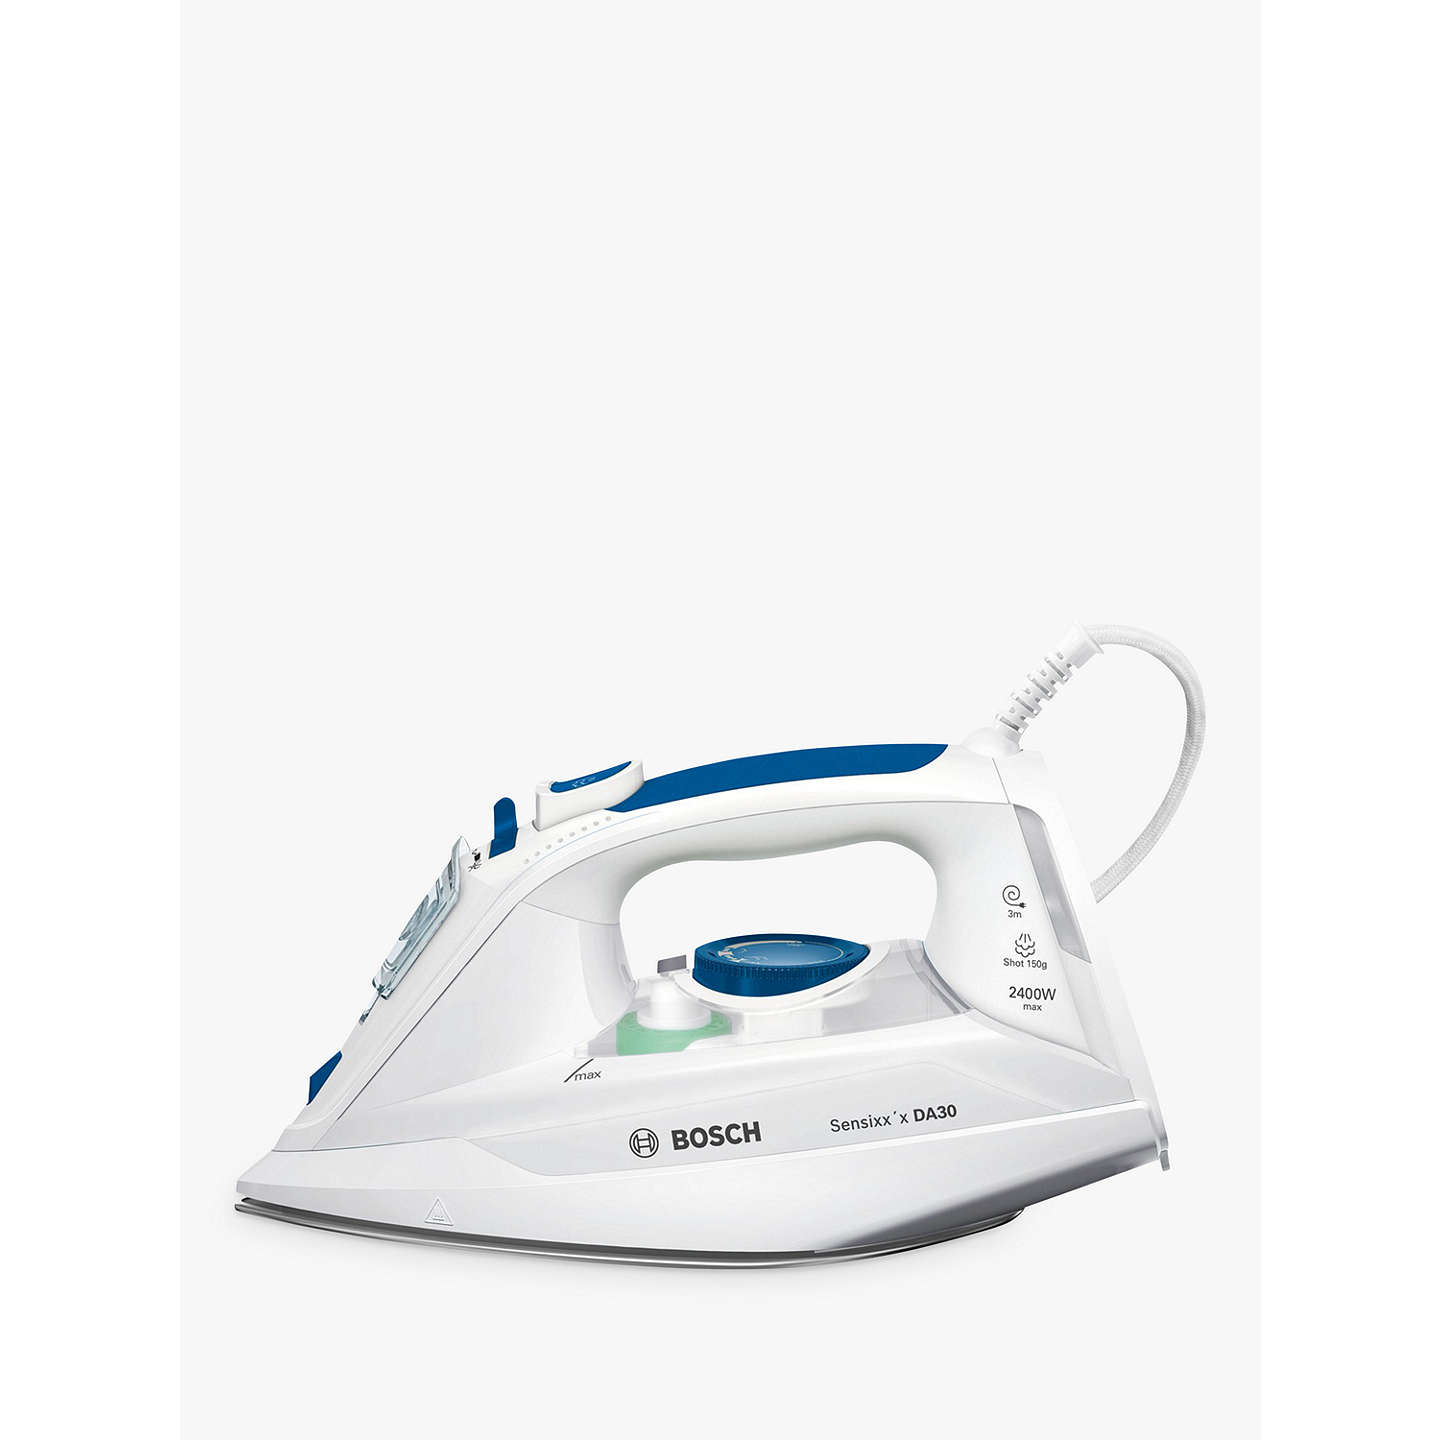 bosch tda3010gb steam iron blue white at john lewis. Black Bedroom Furniture Sets. Home Design Ideas